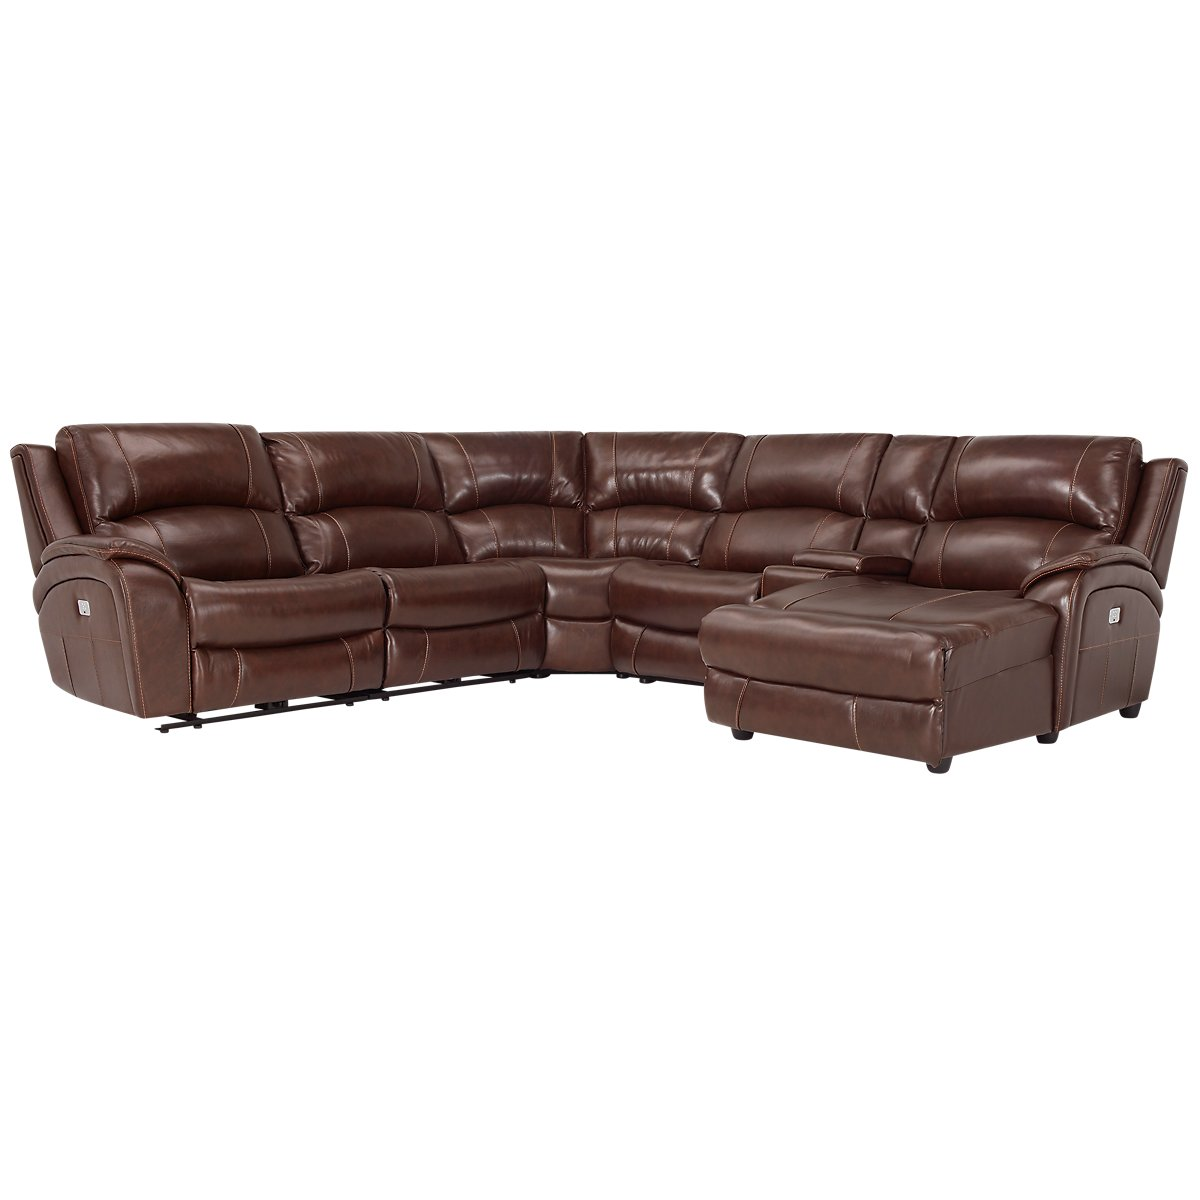 City furniture memphis medium brown leather right chaise for Brown leather sectional with chaise